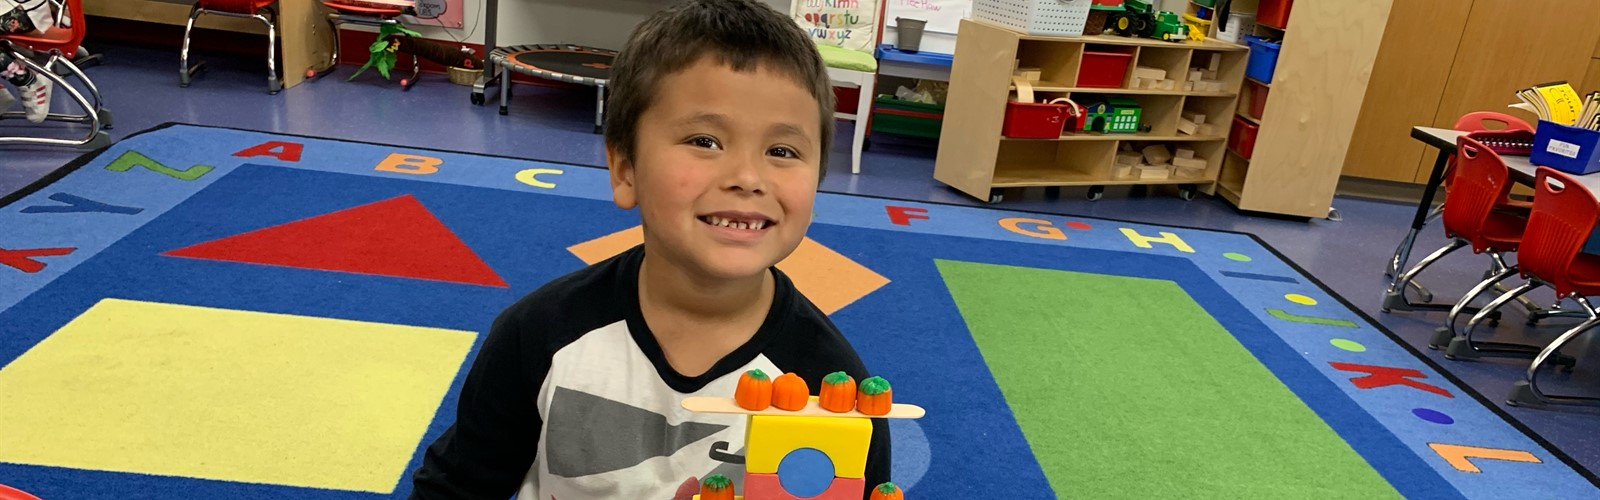 Preschool student sits at table with structure he built with blocks and small pumpkins.